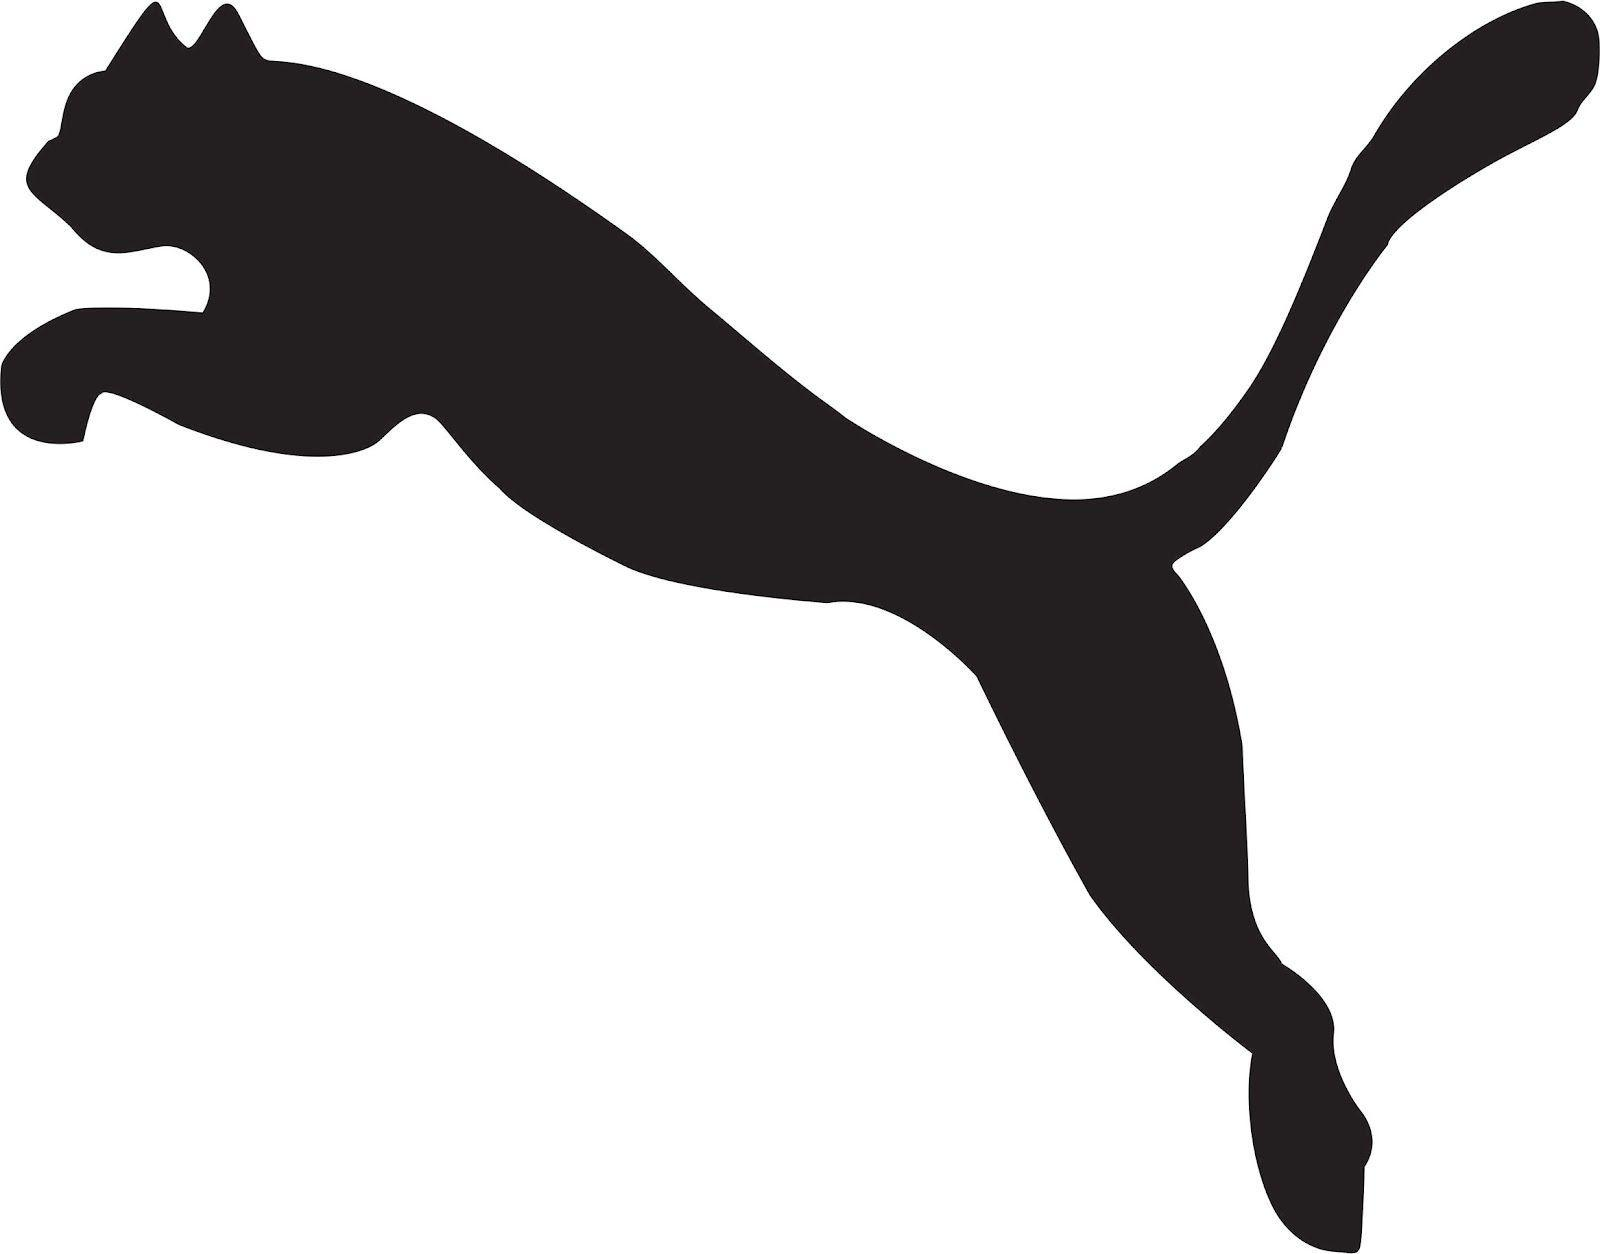 puma logo wallpaper 6jpg - photo #23